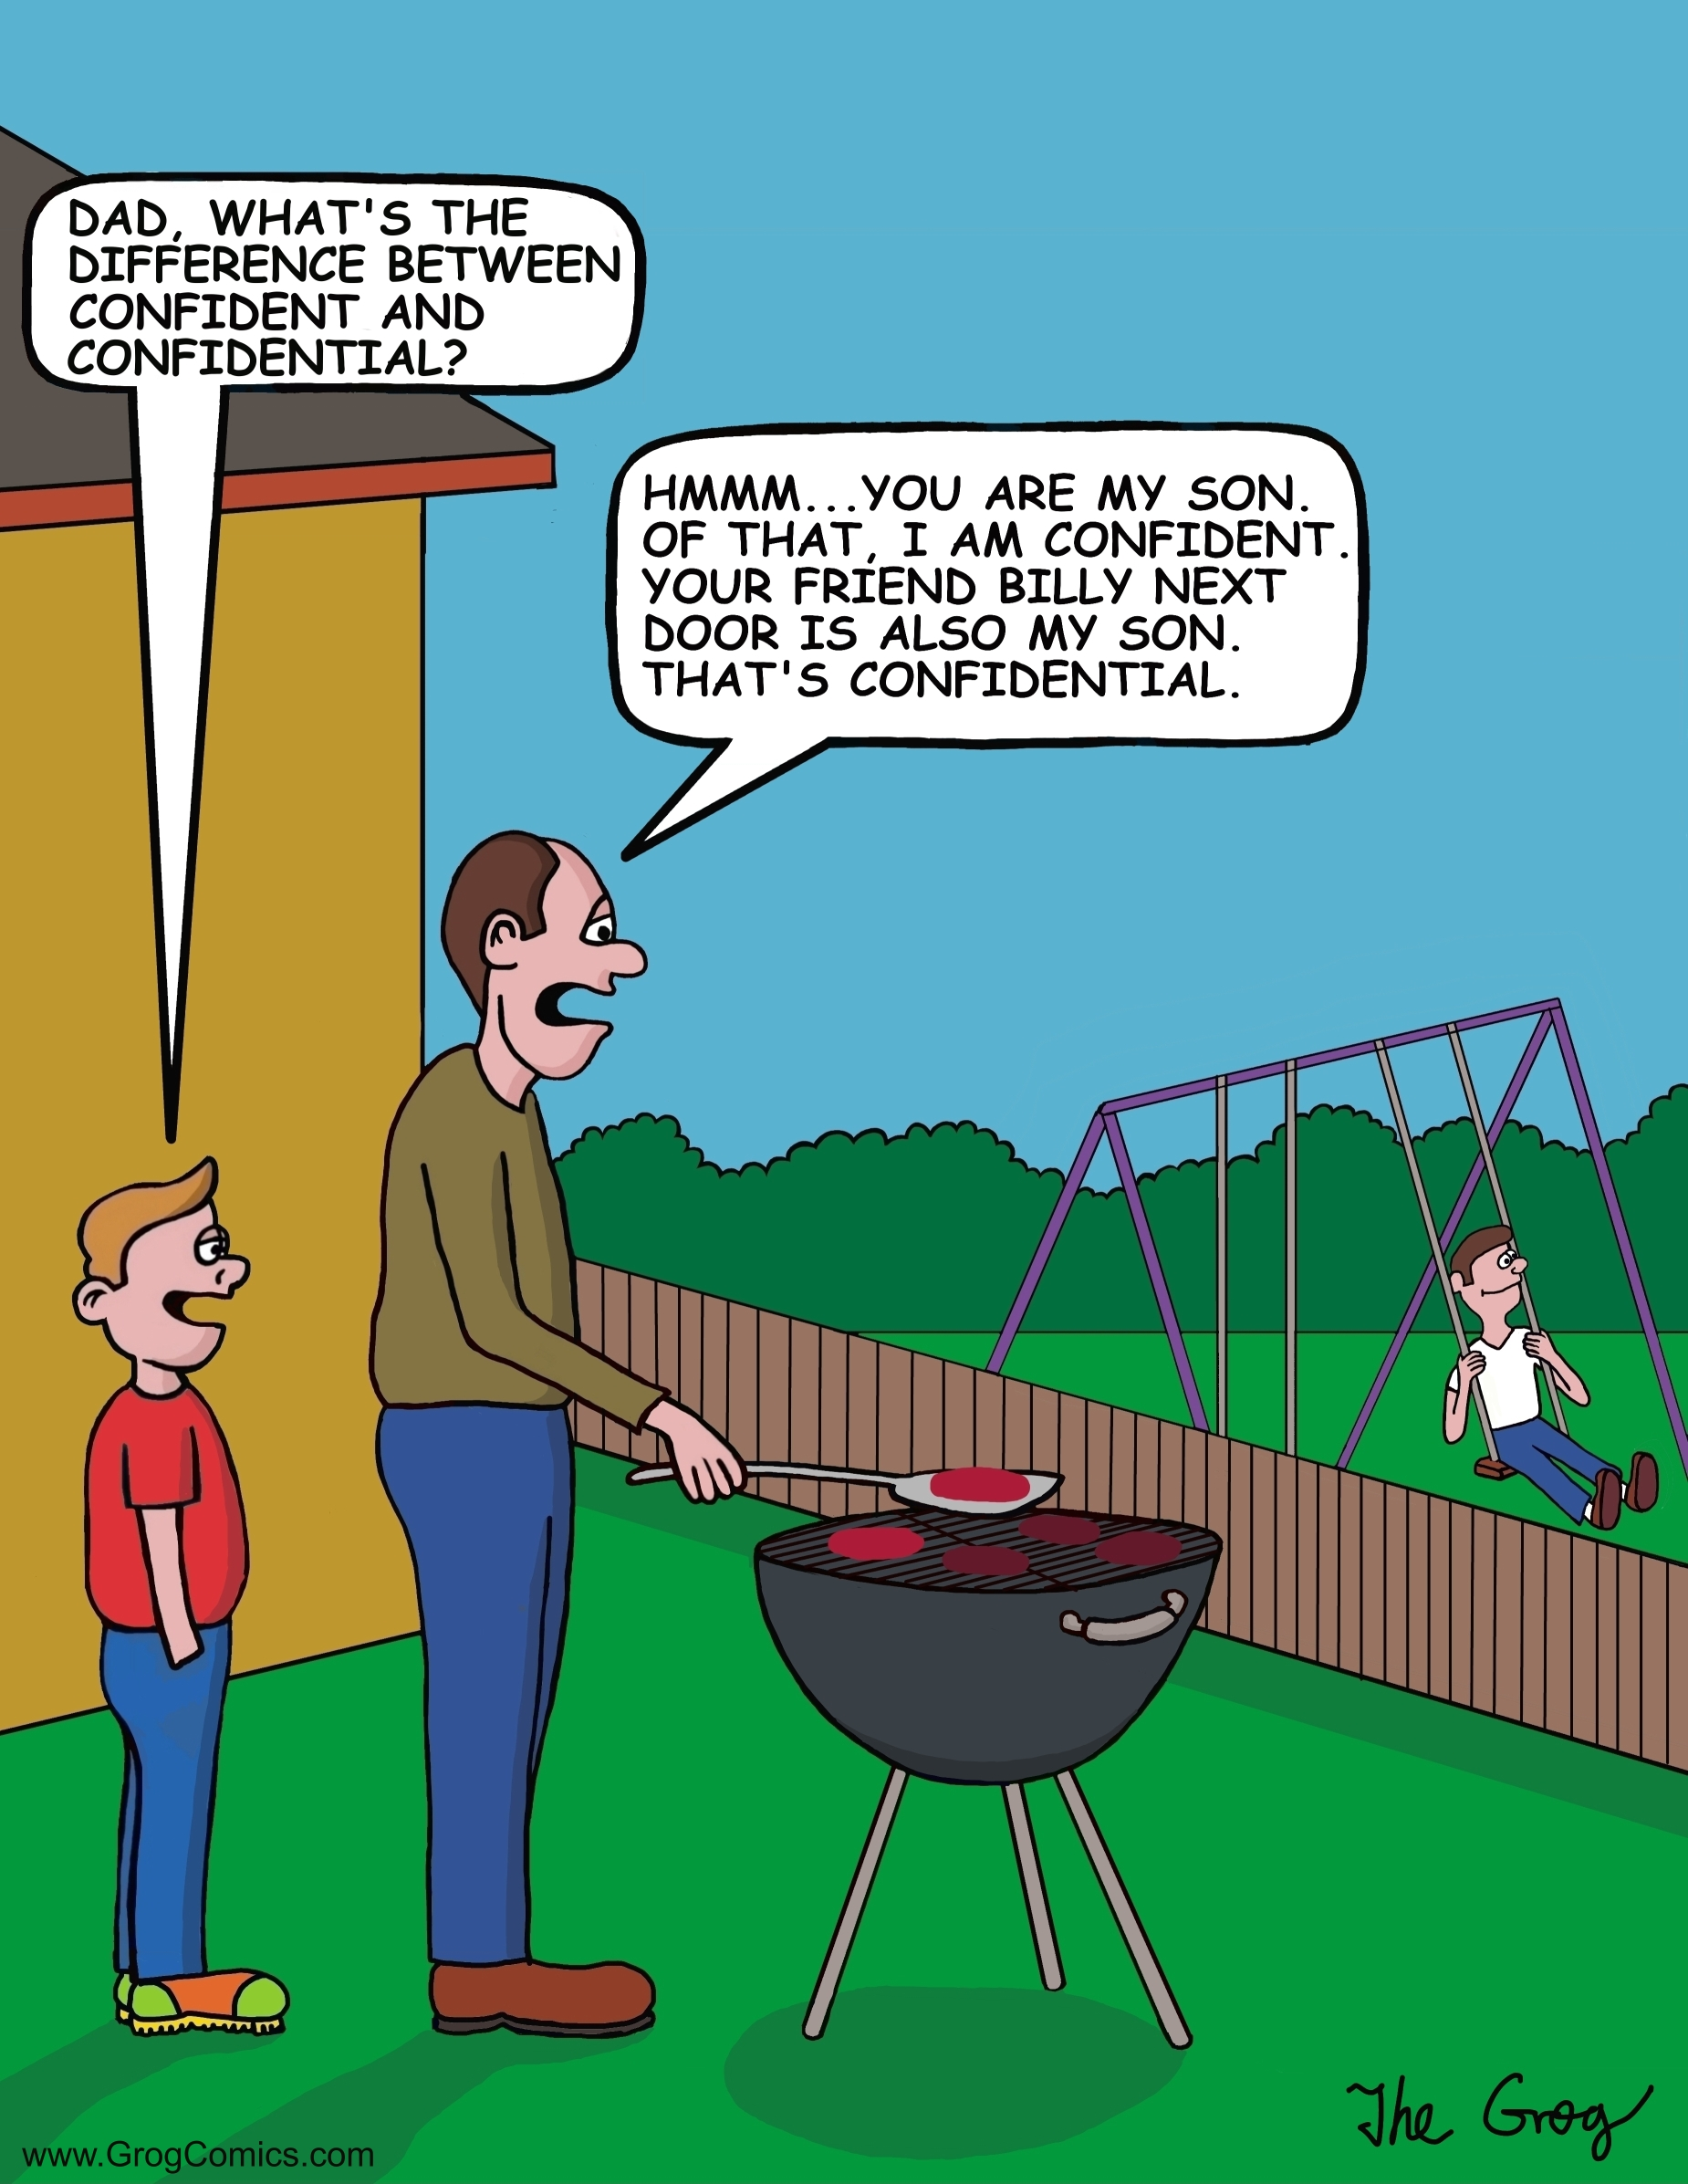 "As a man barbecues in his backyard, his son walks up to him and asks him a question. ""Dad, what's the difference between confident and confidential?"", asks the son. The father says, ""Hmmm...you are my son. Of that, I am confident. Your friend Billy next door is also my son. That's confidential""."